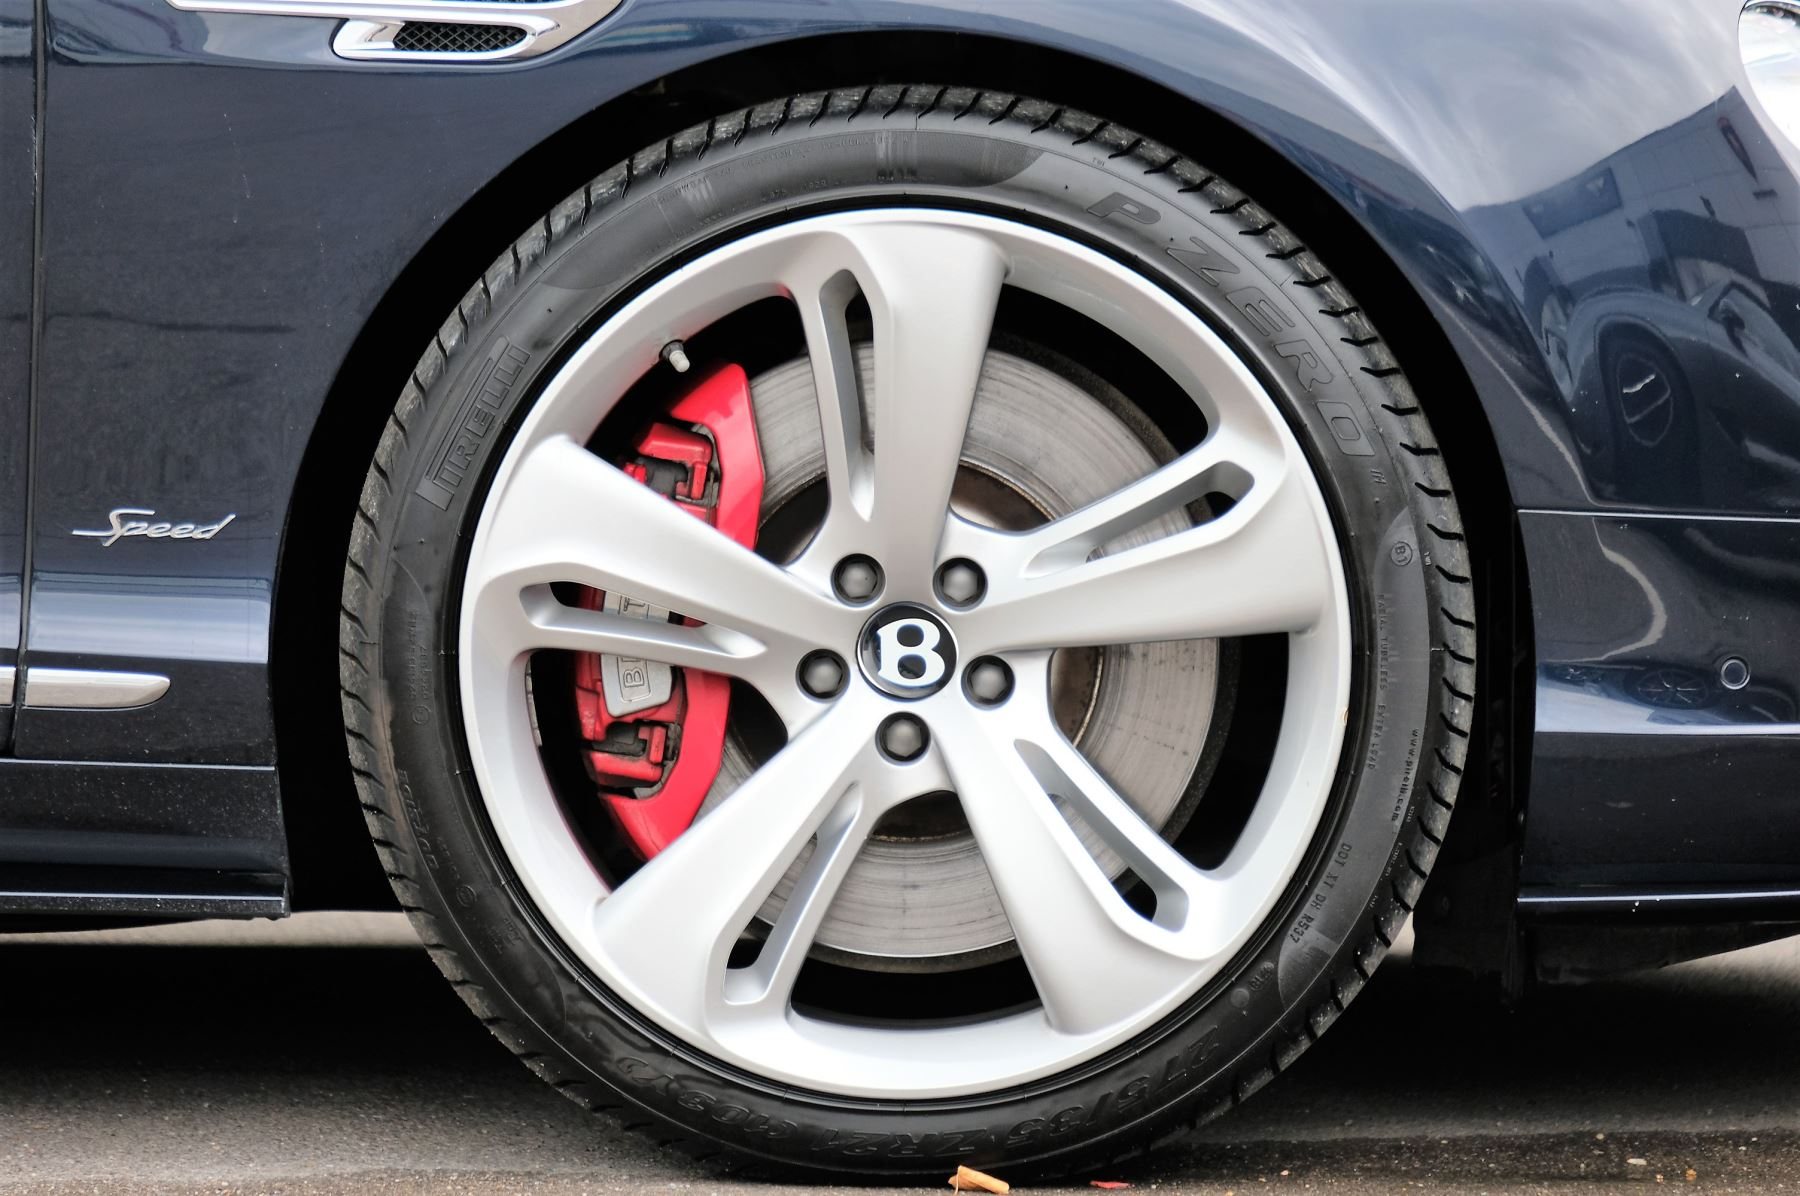 Bentley Continental GT 6.0 W12 [635] Speed - 21 inch Directional Sports Alloys - Ventilated Front Seats with Massage image 9